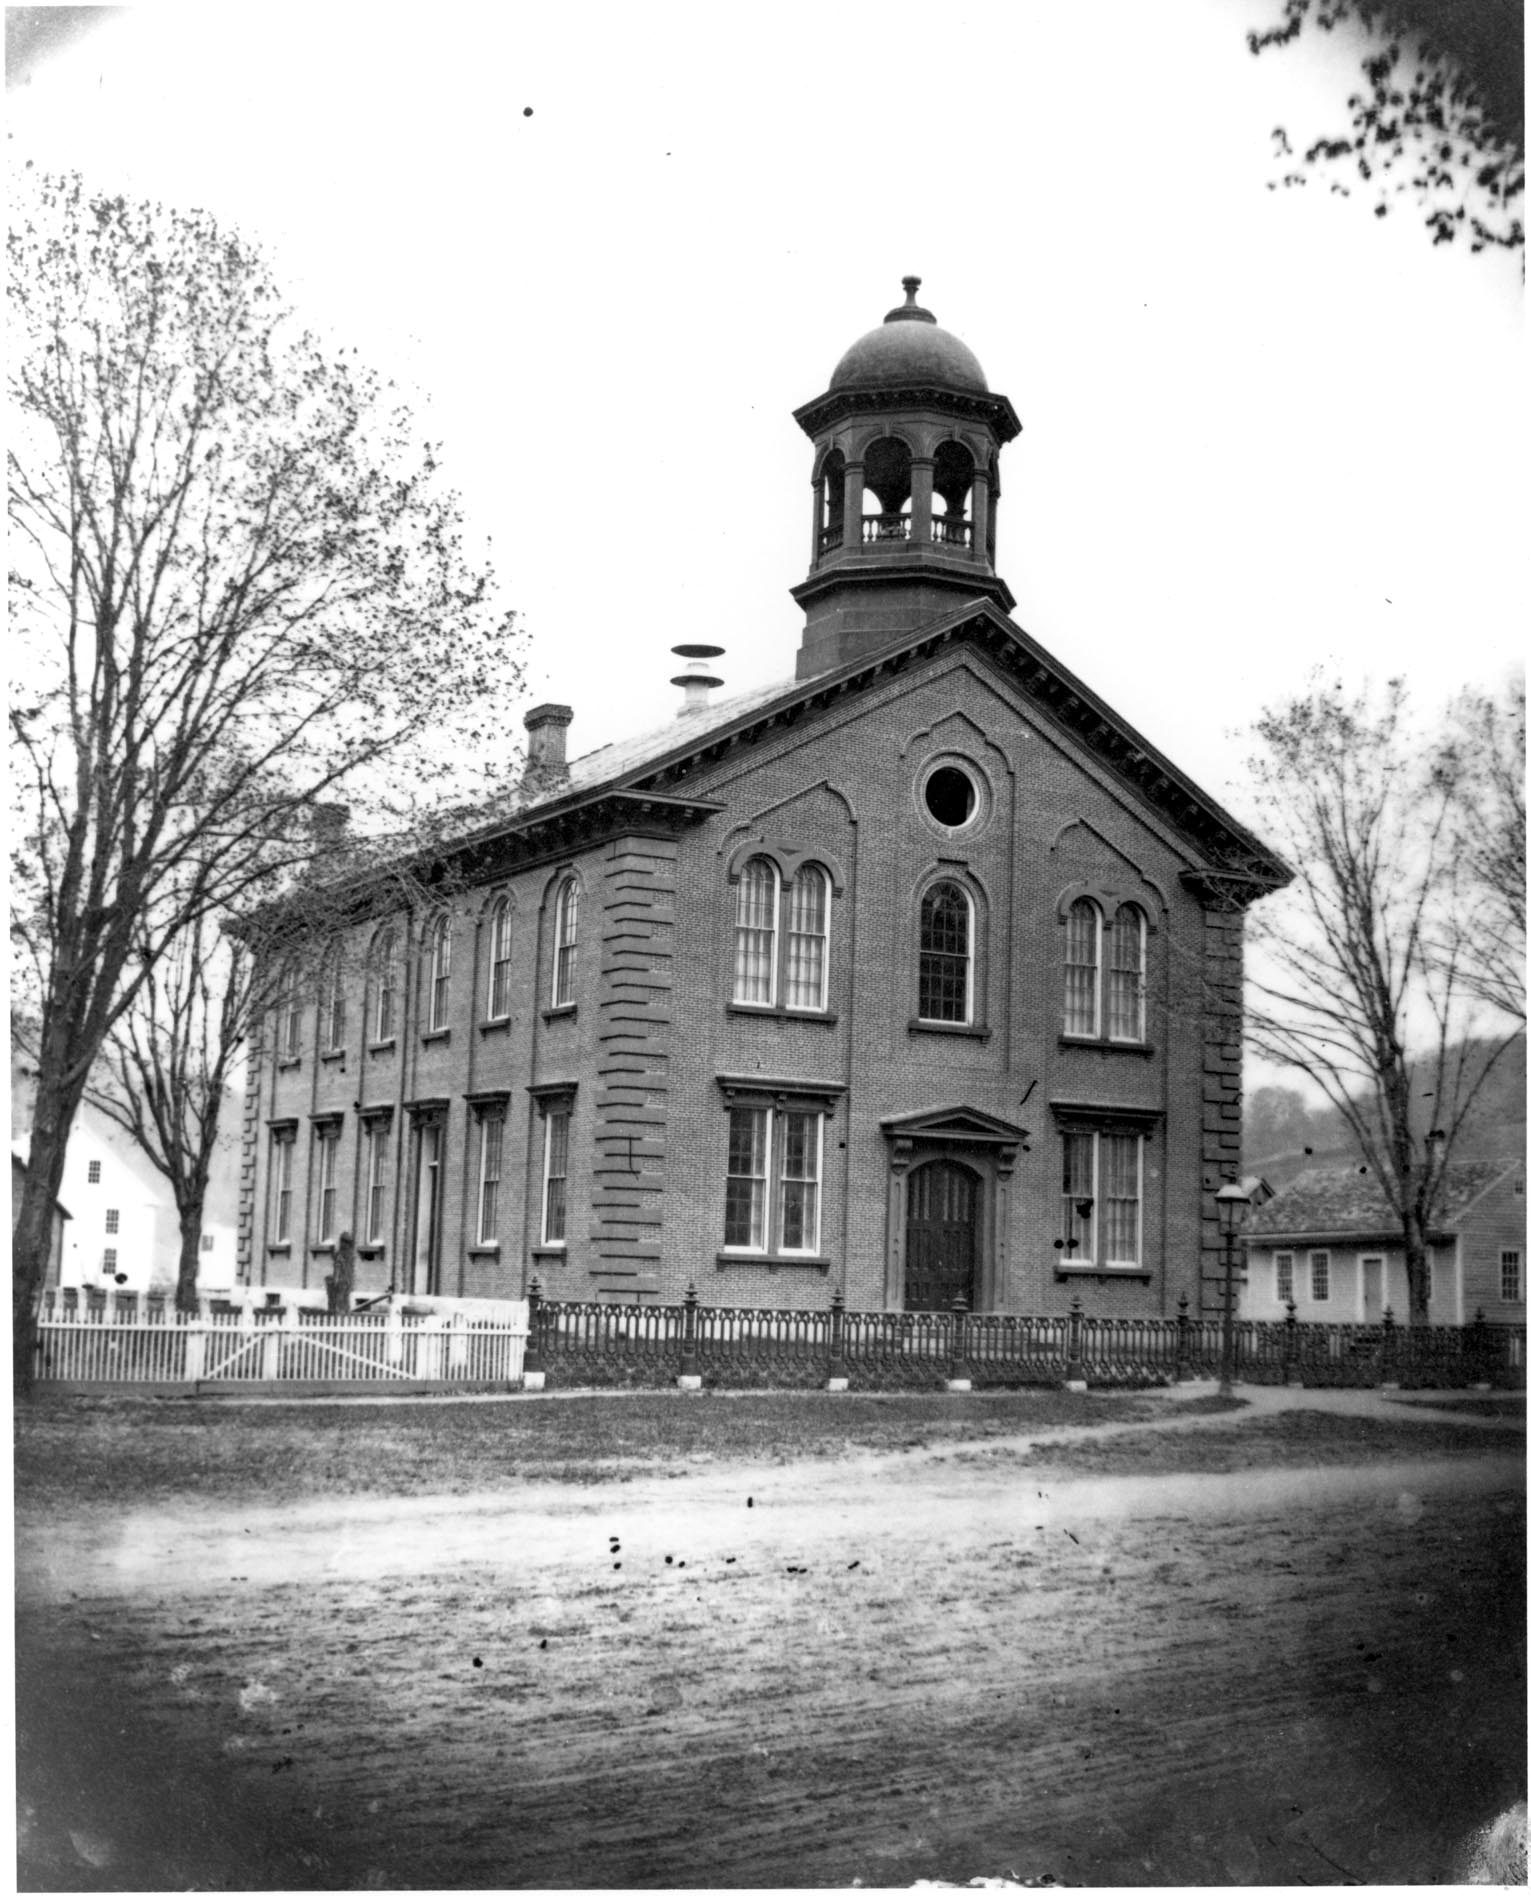 The County Courthouse in the village, built in 1855.